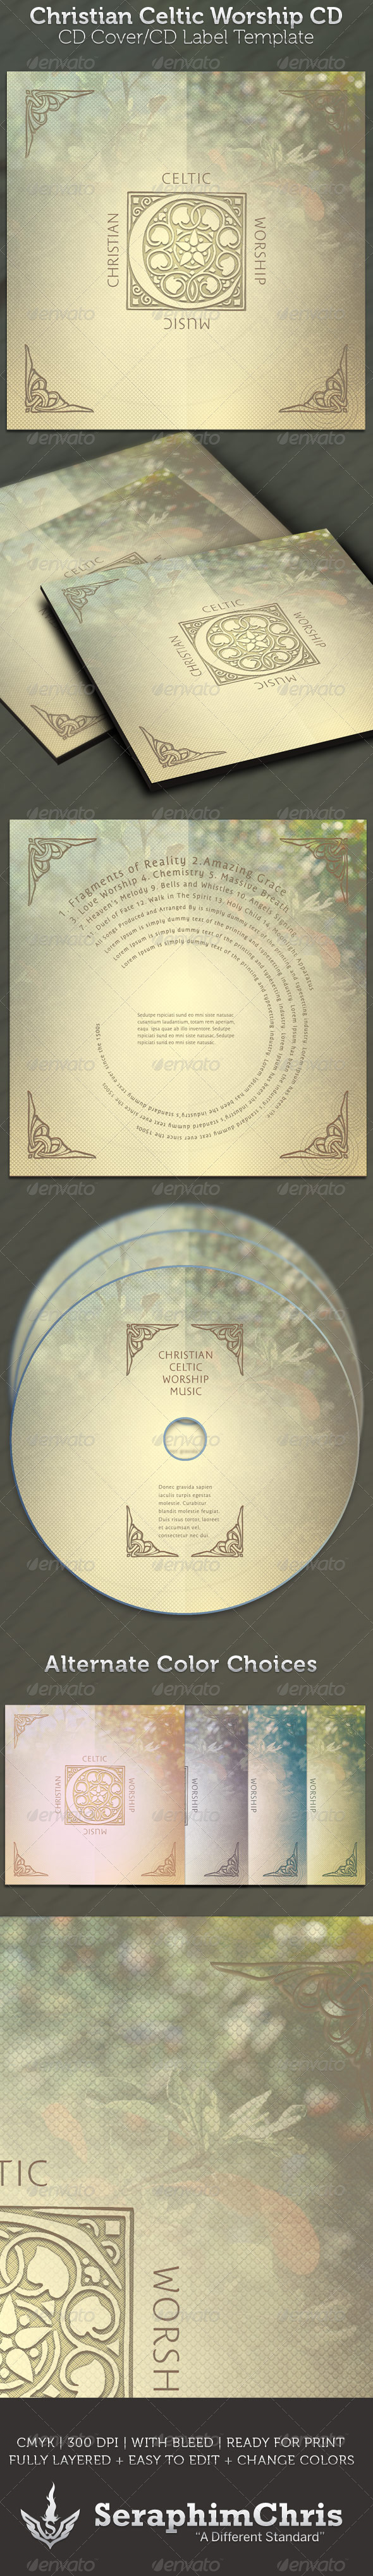 Celtic Christian Worship CD - CD & DVD Artwork Print Templates